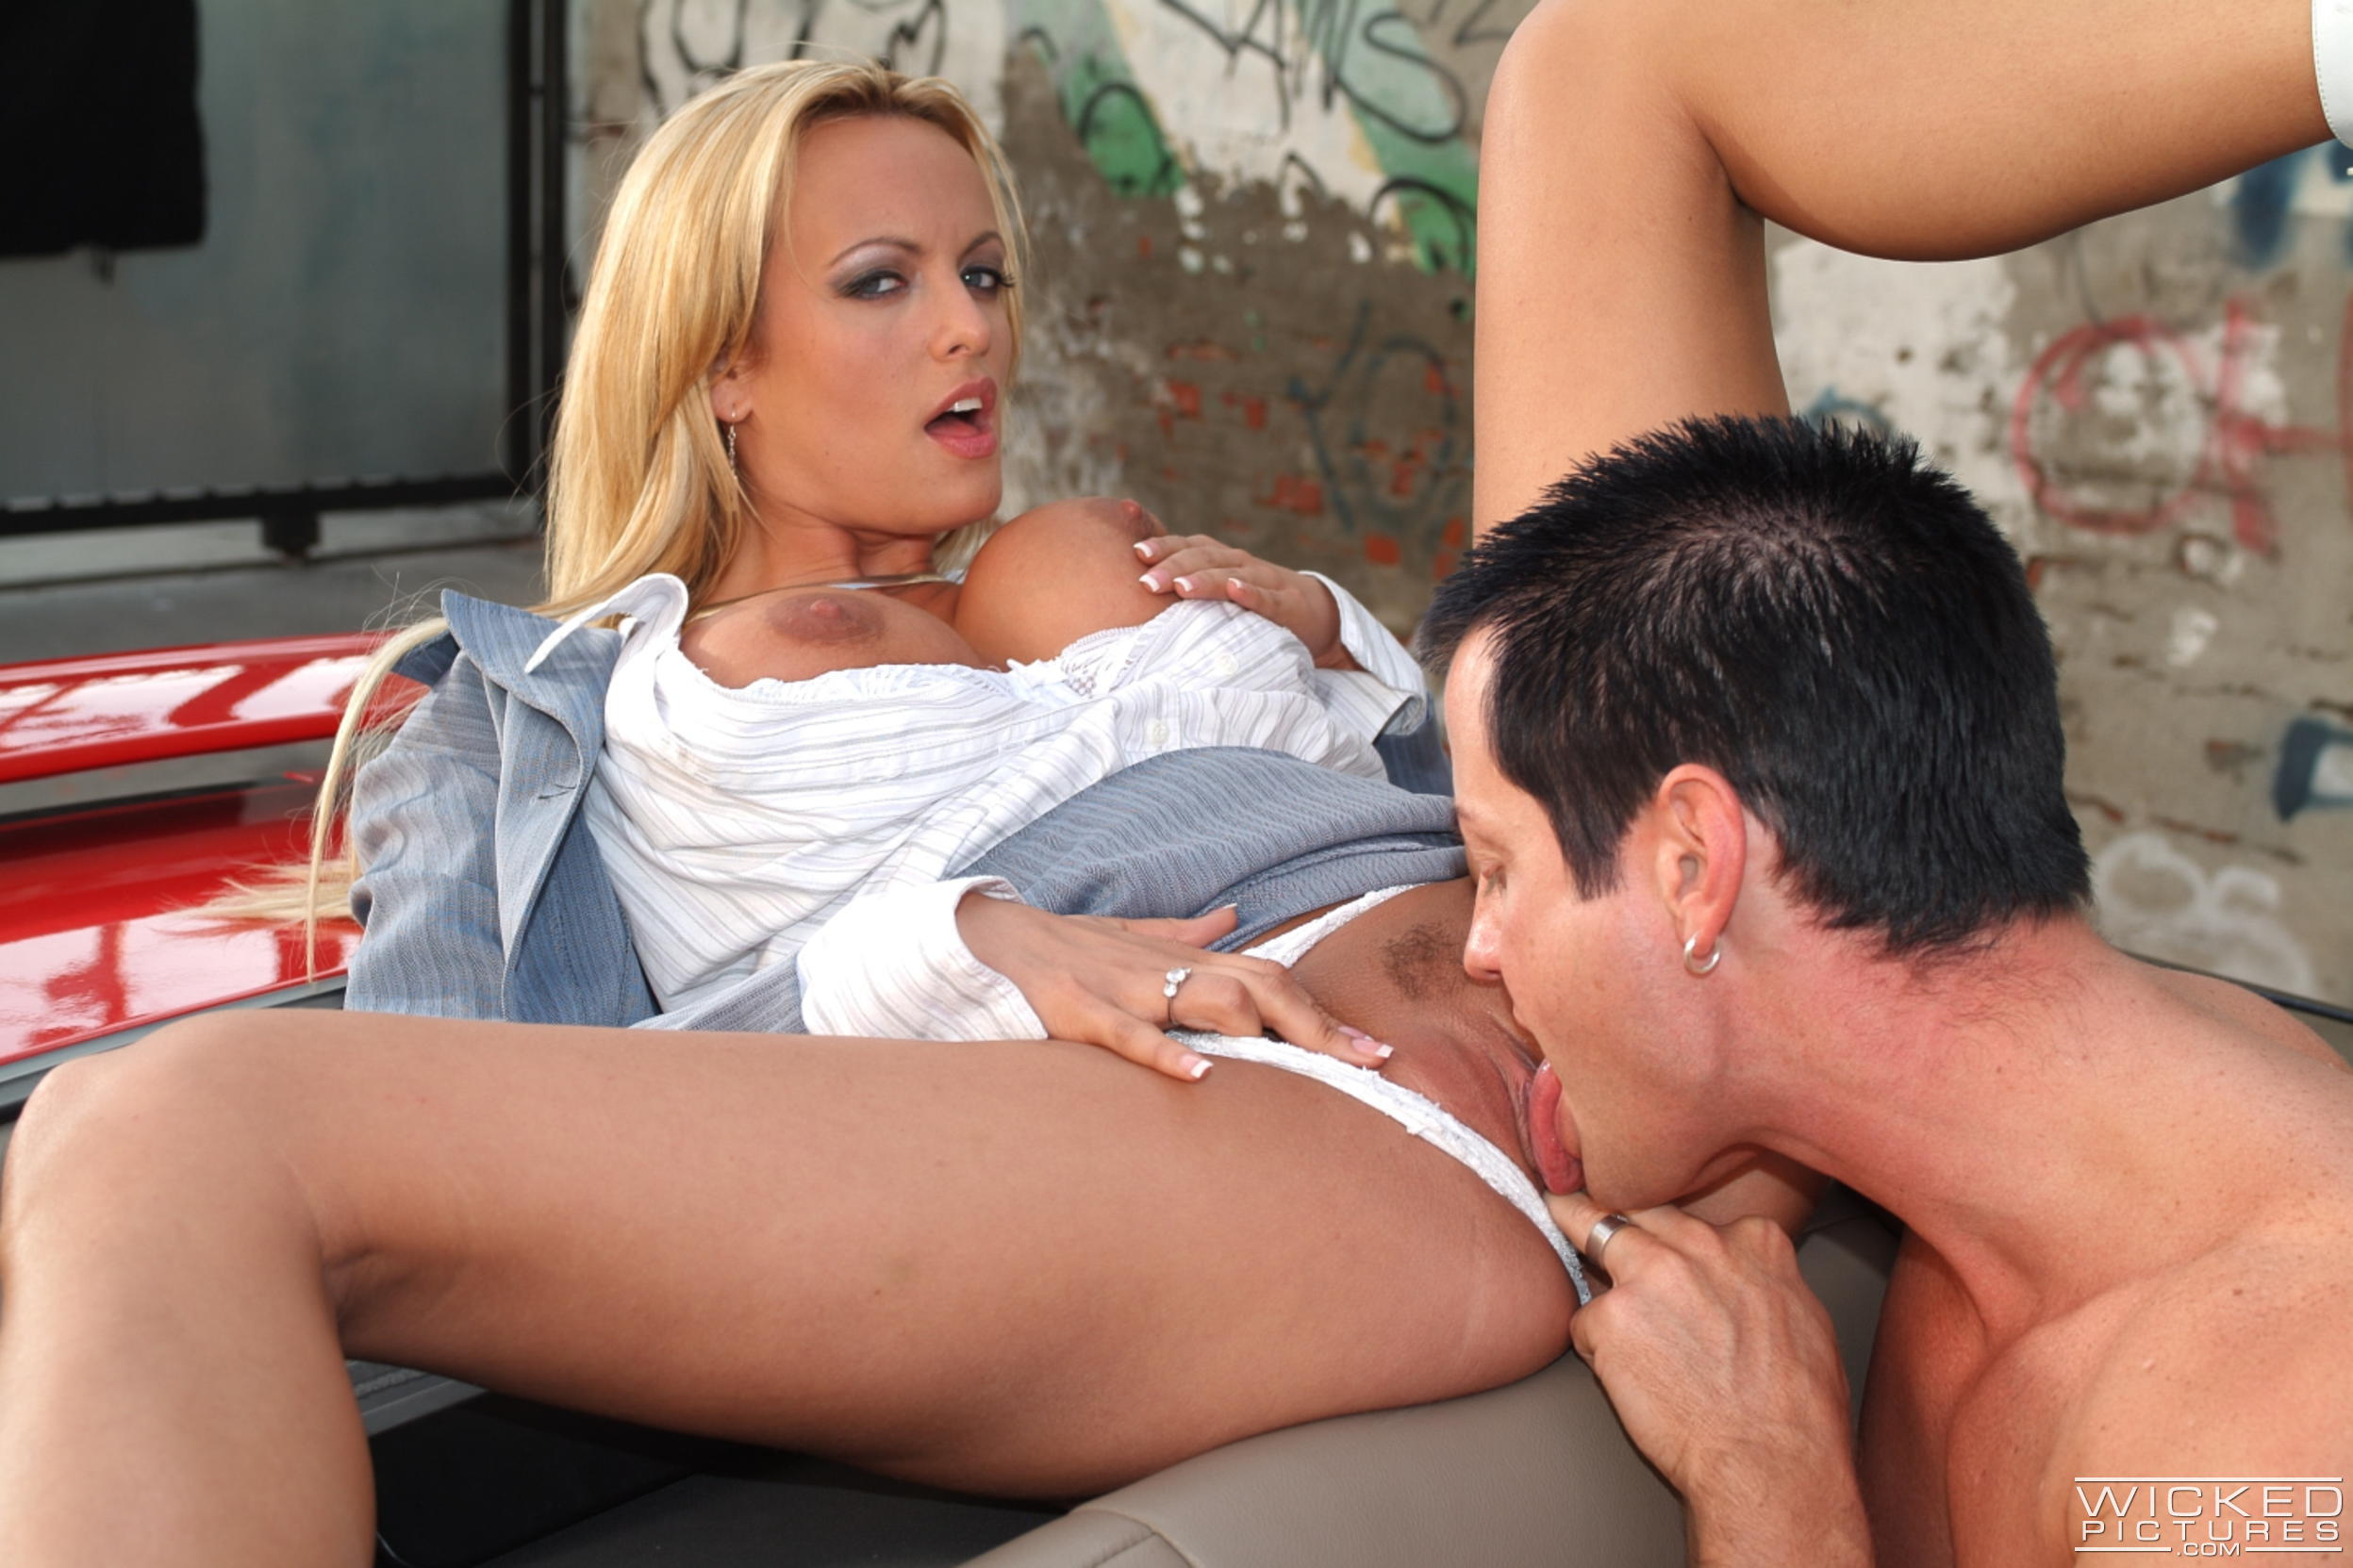 Wicked 'The Closer Scene 2' starring Stormy Daniels (Photo 27)